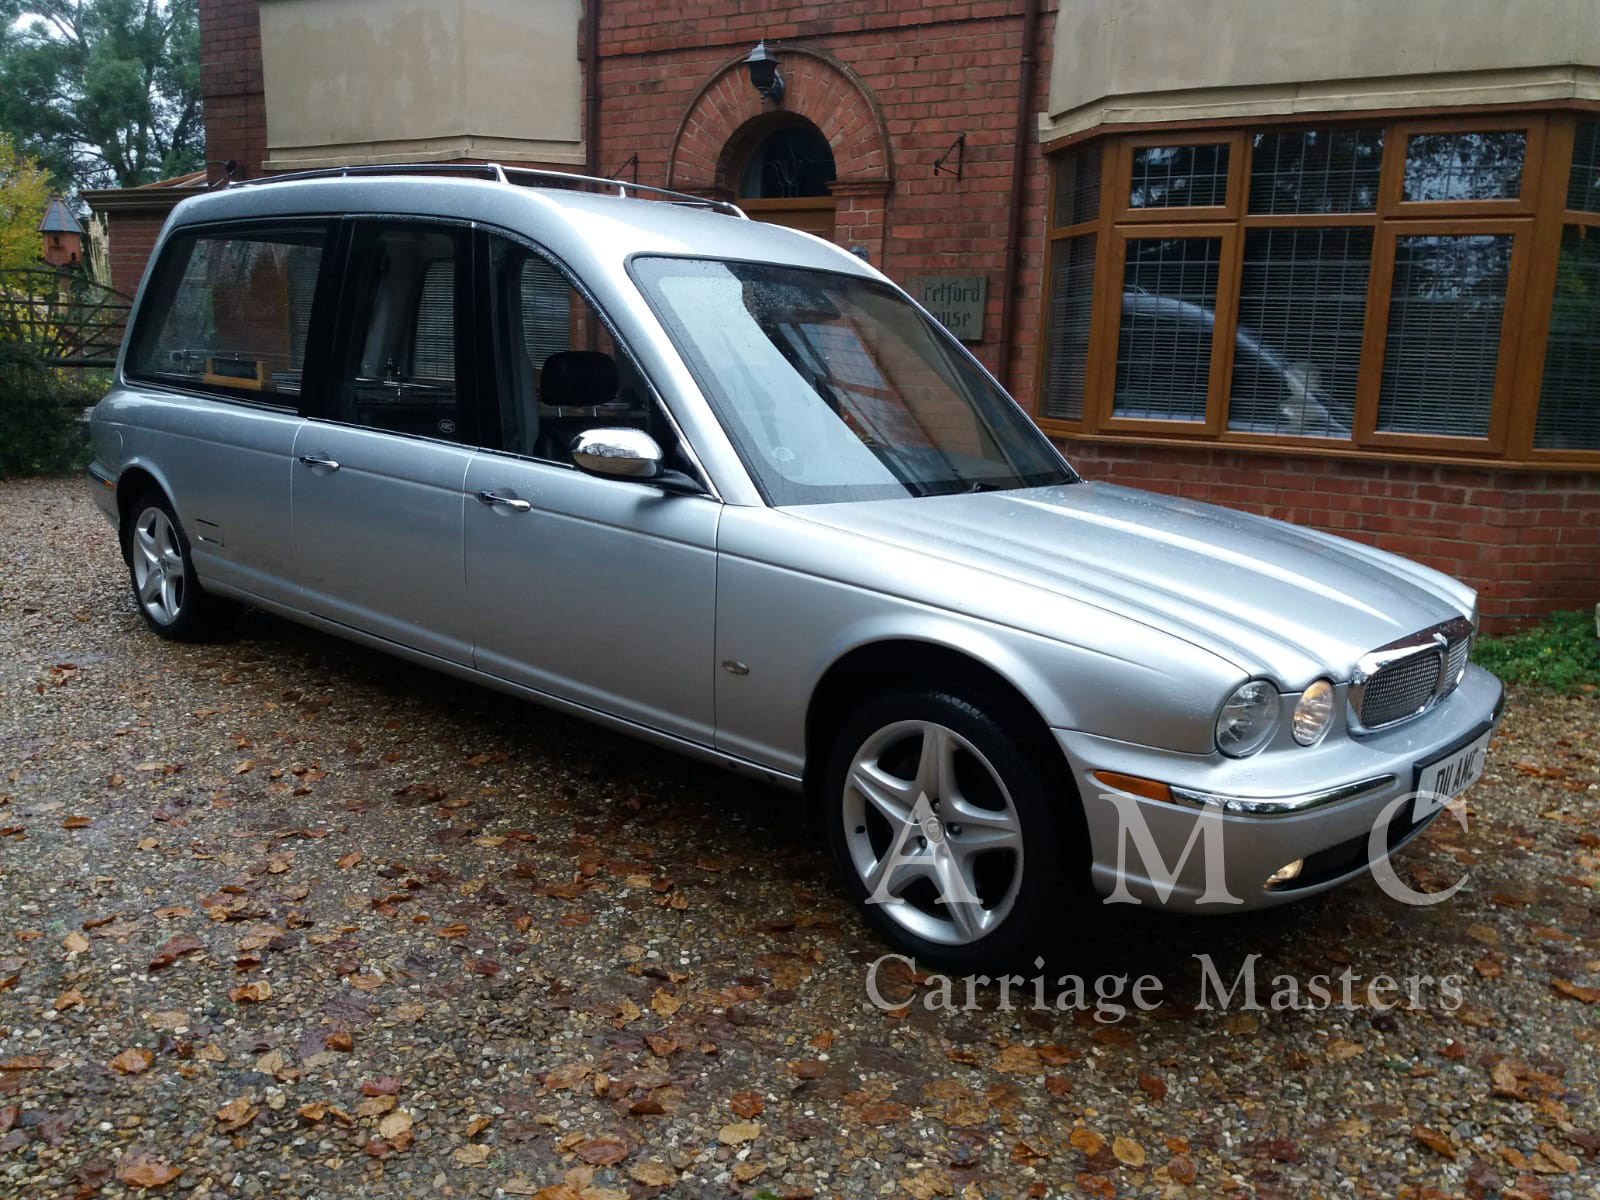 Silver Jaguar XJ X350 Model Hearse